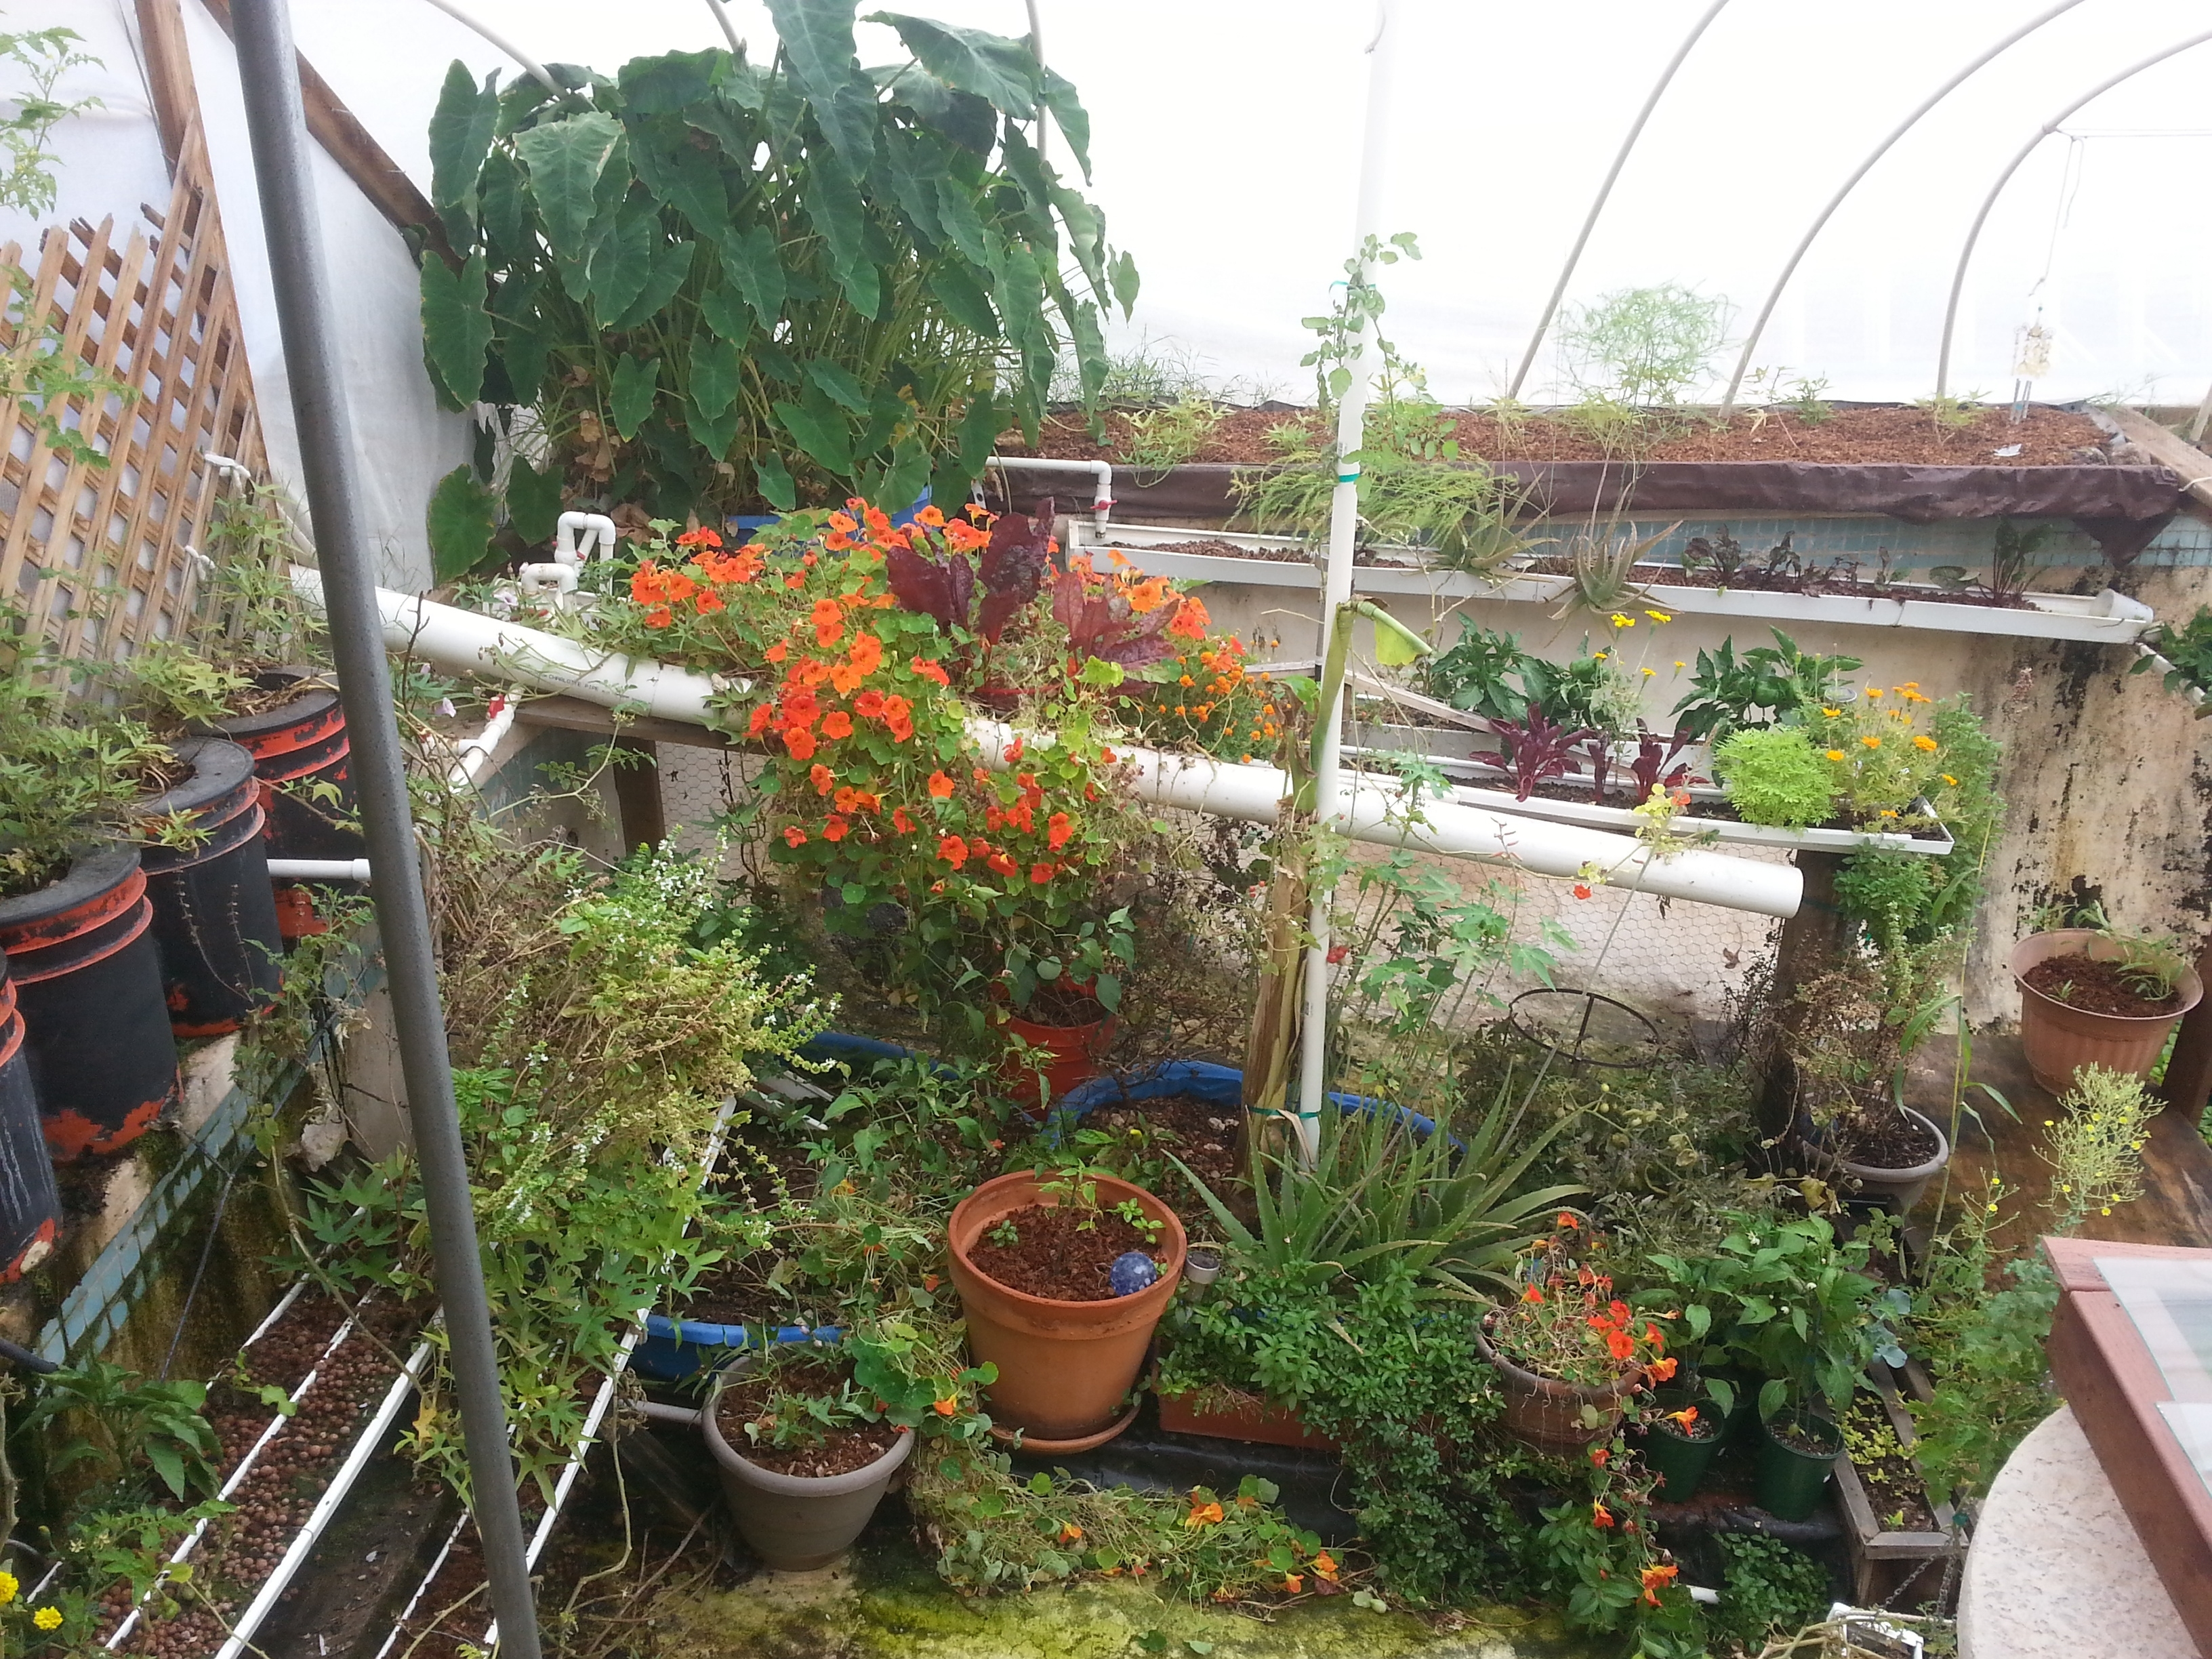 These Folks Feed Their Family With A Garden In Their Swimming Pool regarding Backyard Garden To Feed Family